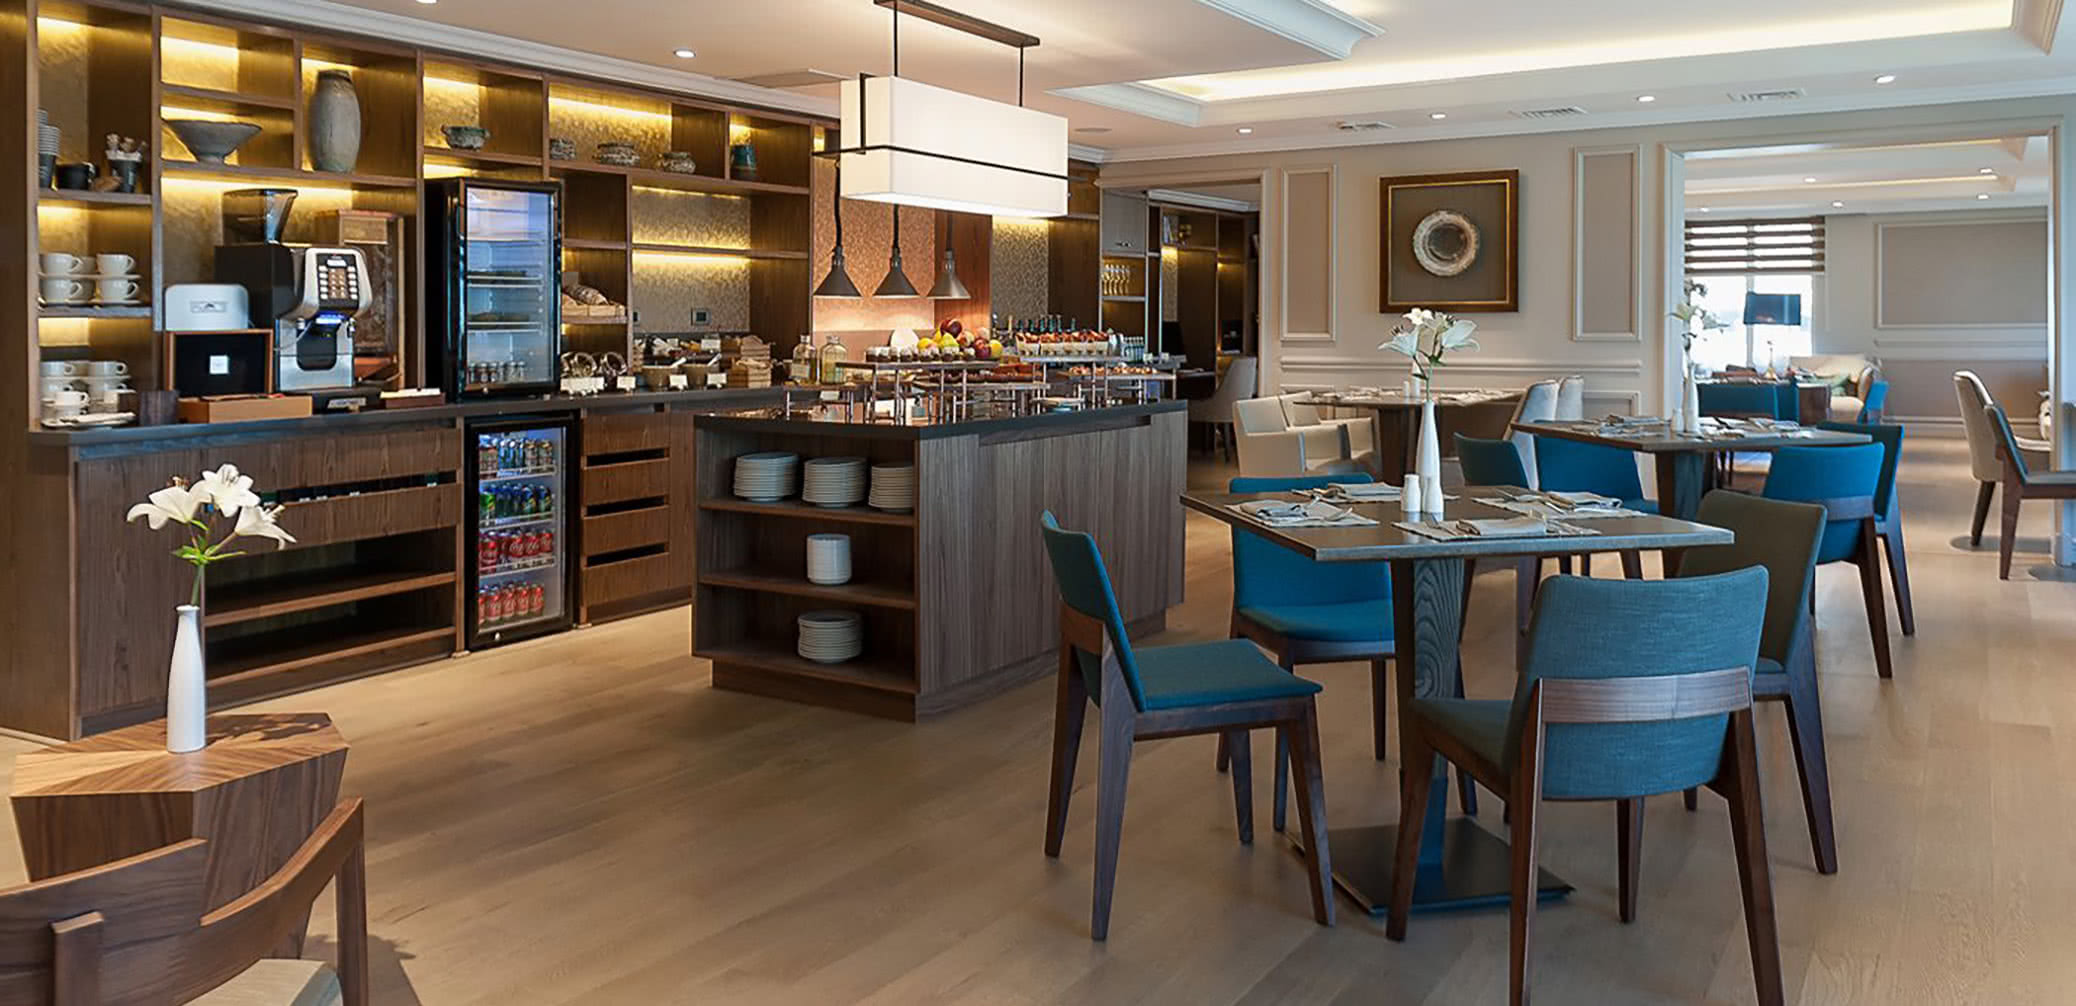 Best Hotel Executive Club Lounges In Santiago, Chile